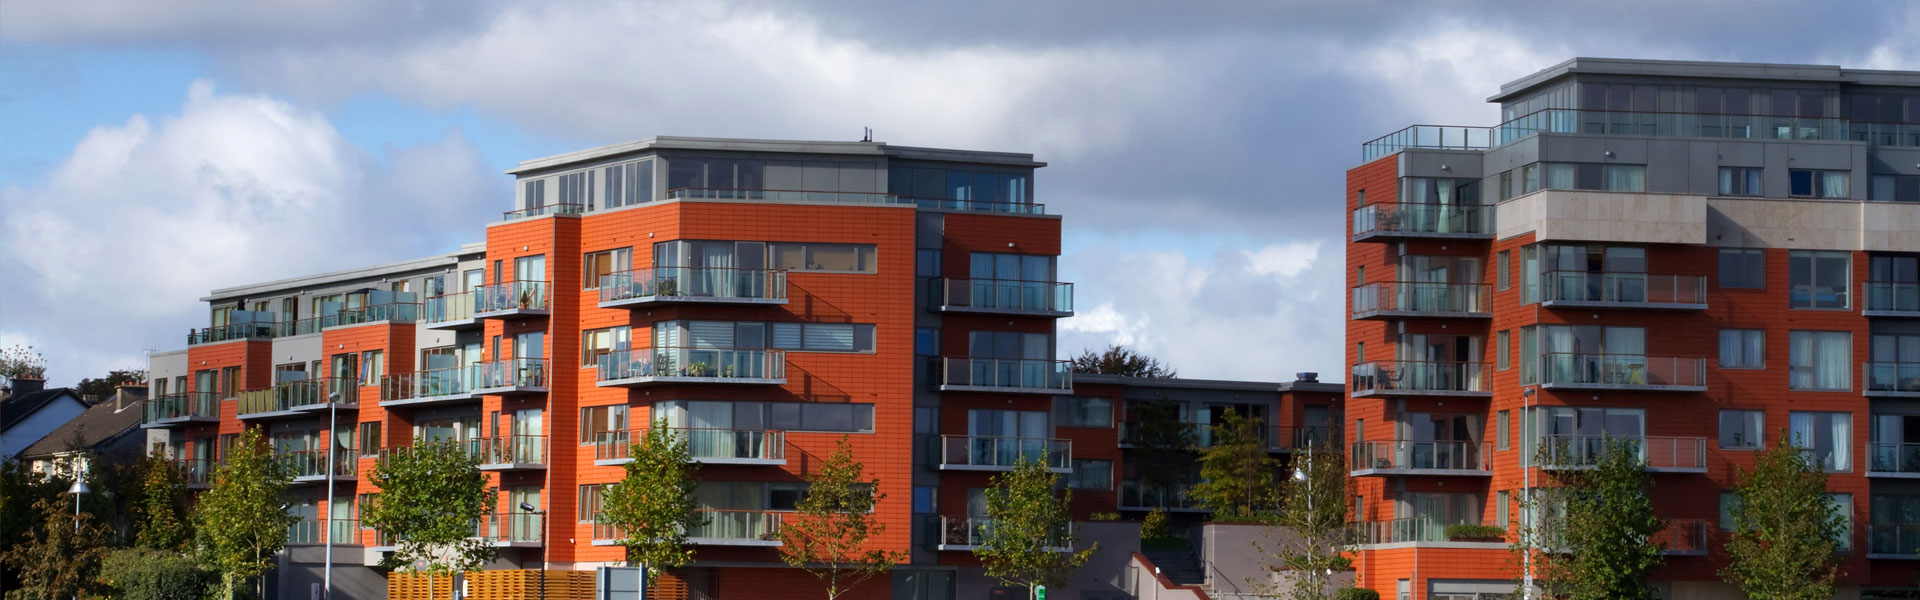 professional Commercial property management in Templepatrick